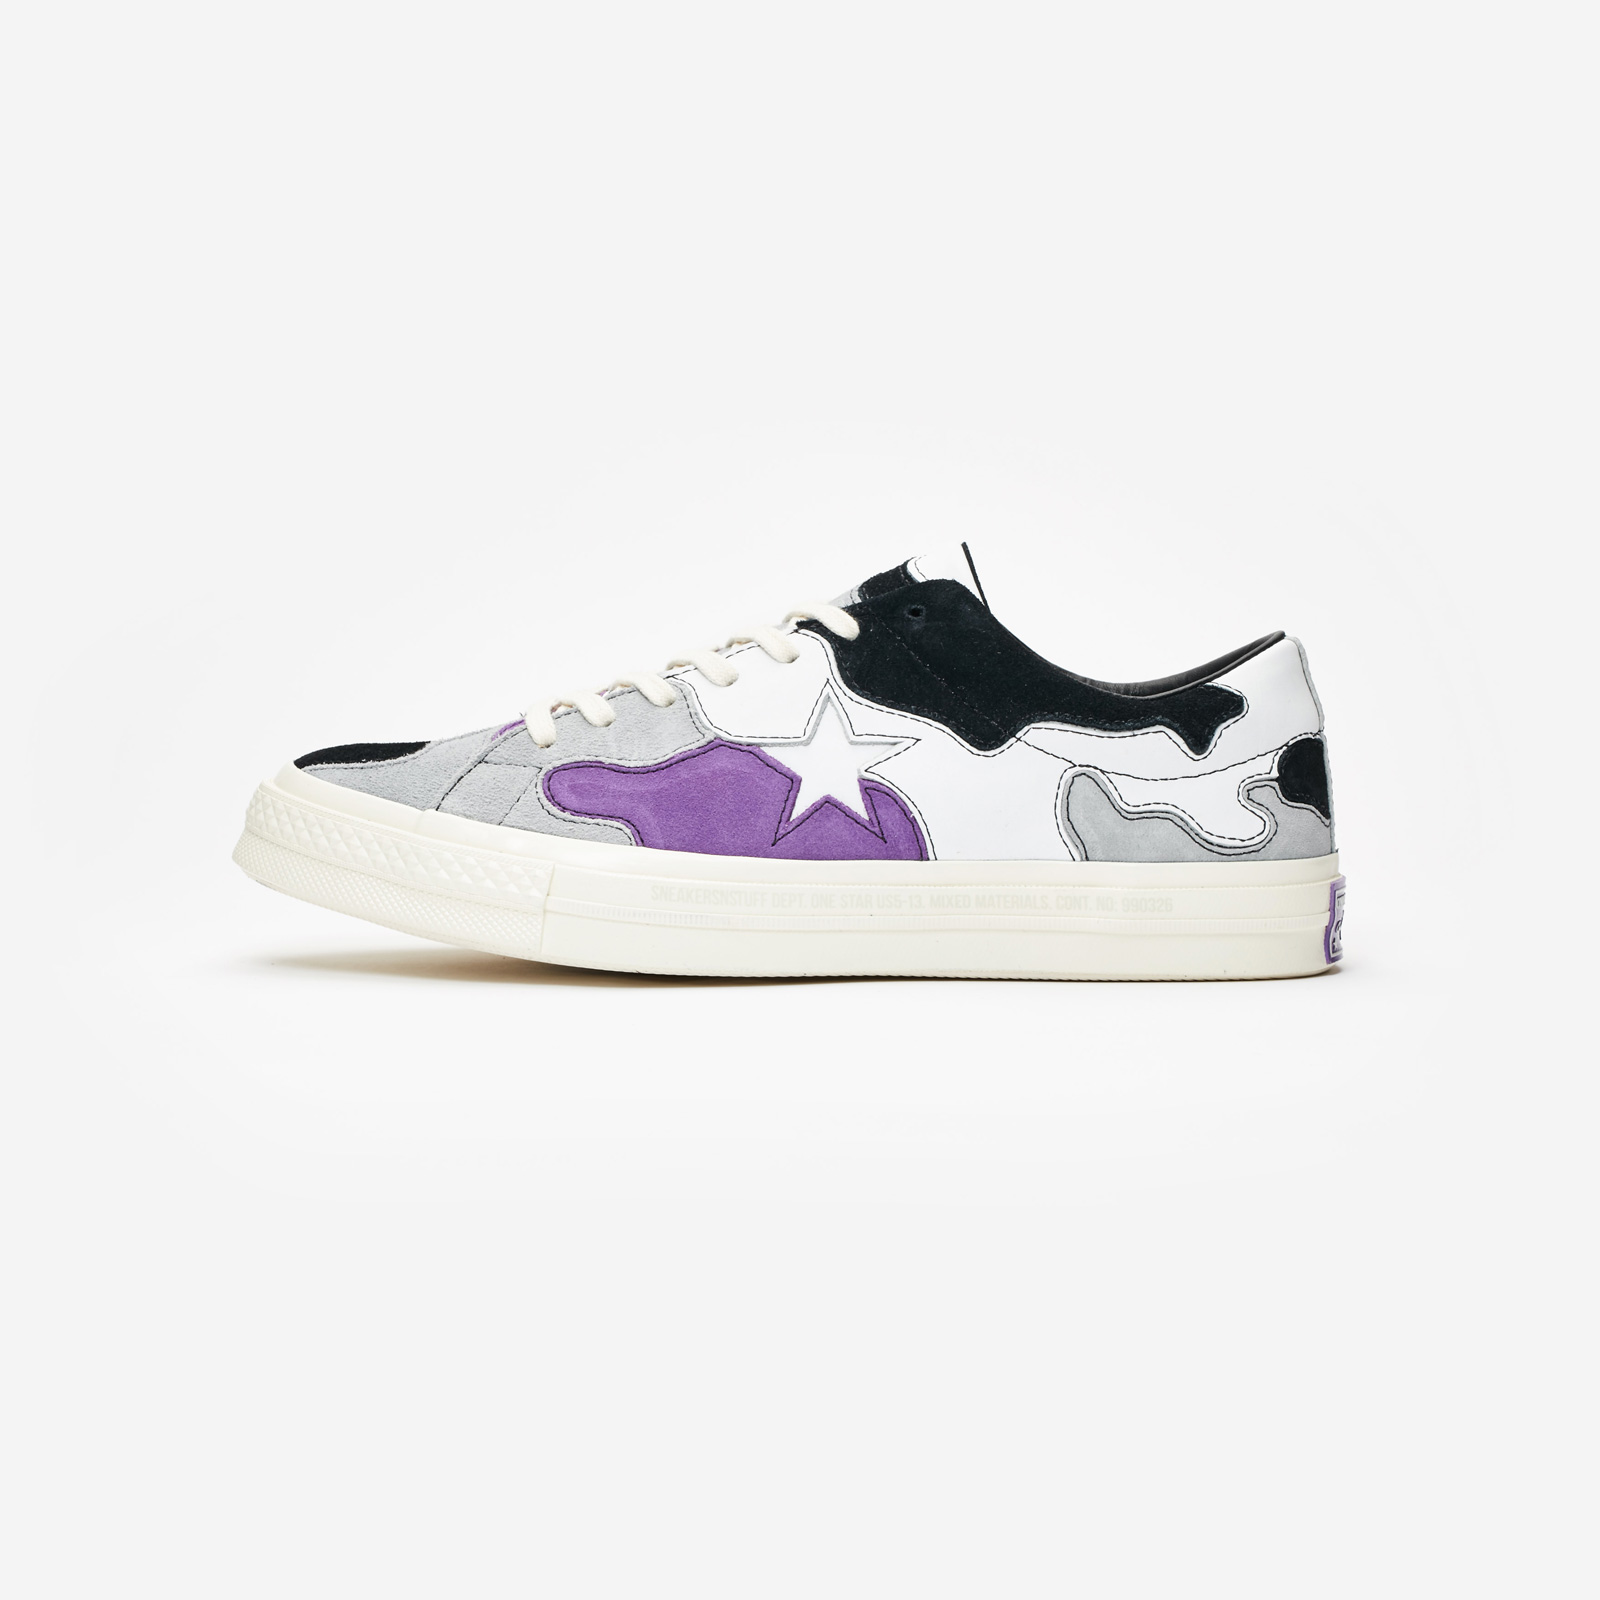 Converse One Star x Sneakersnstuff 161407c